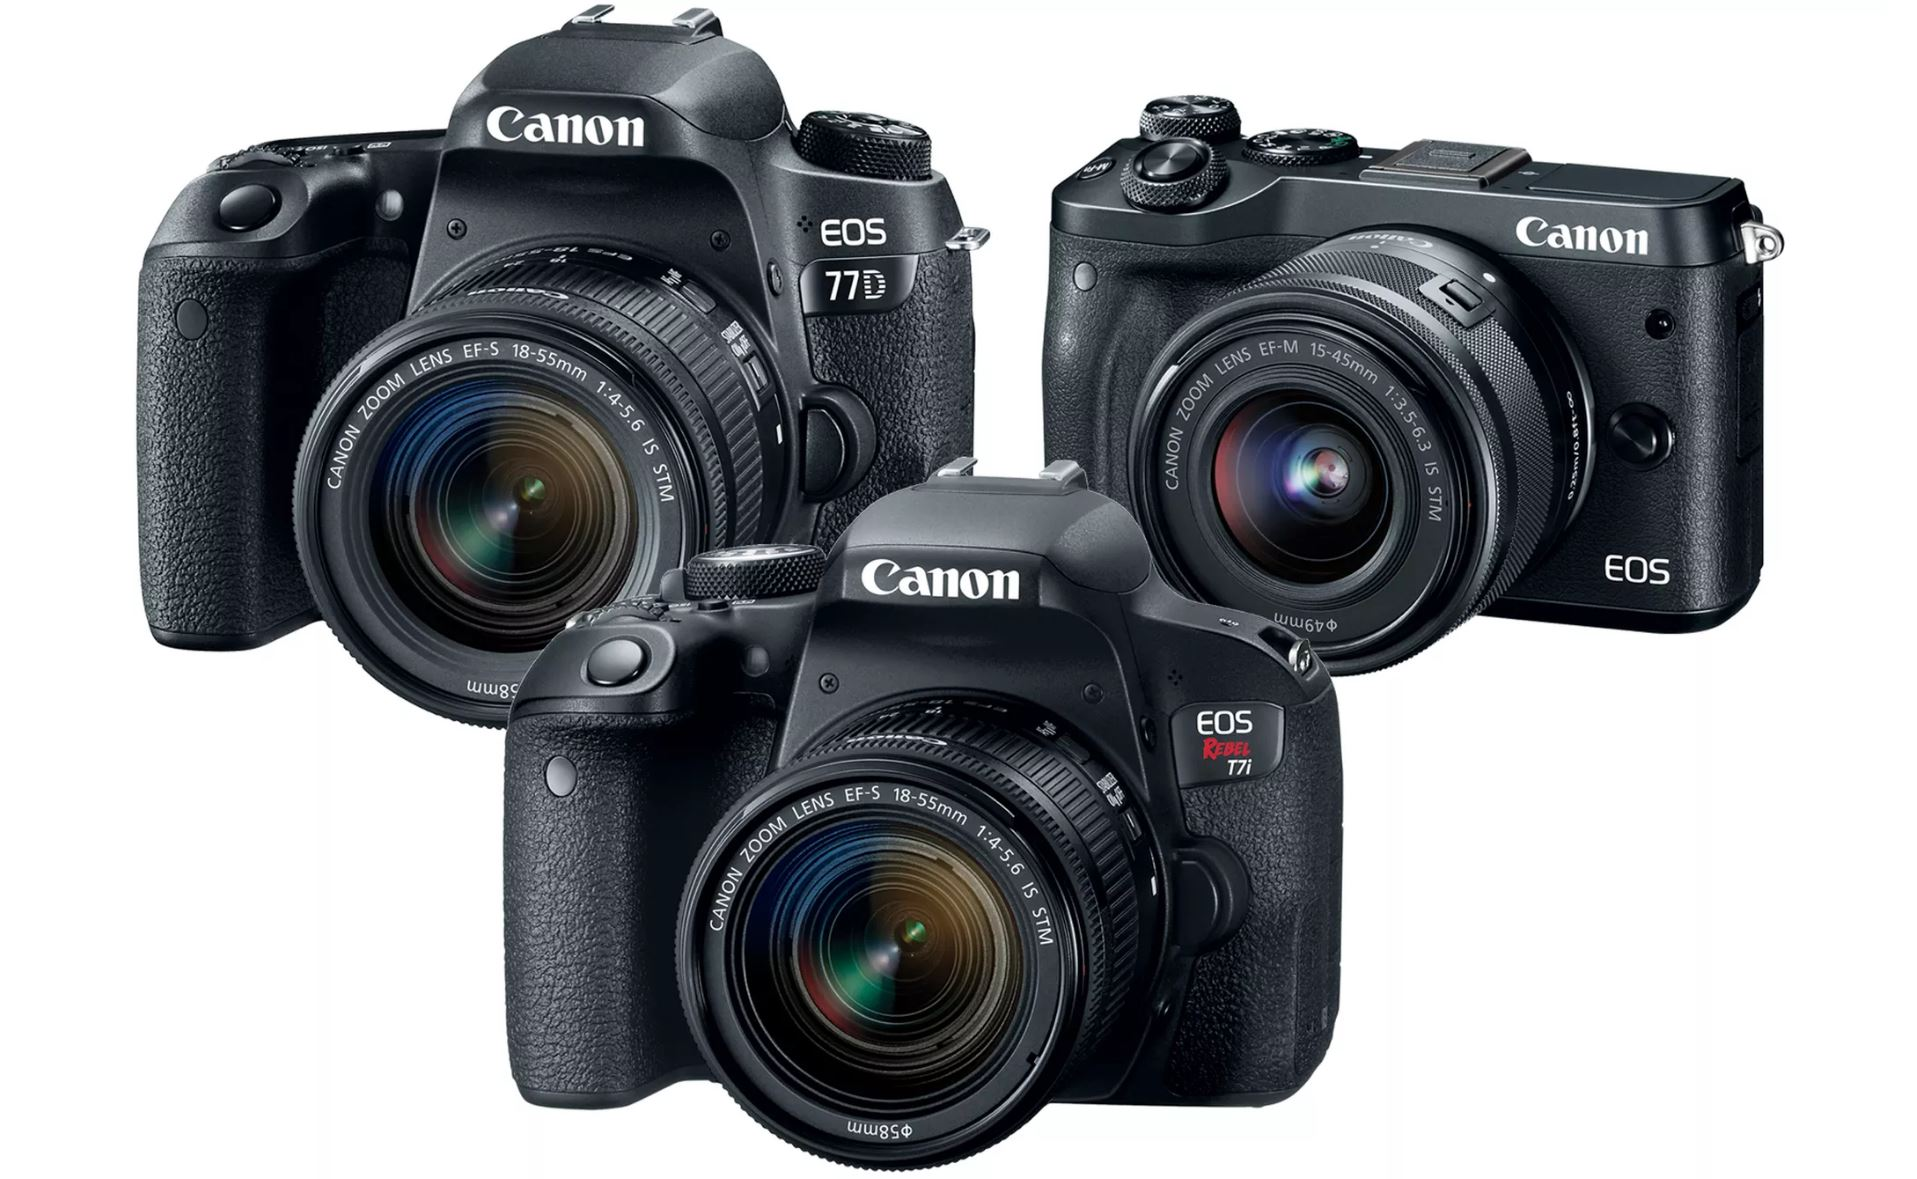 Canon EOS 77D, Rebel T7i, M6 Manuals now Available for Download